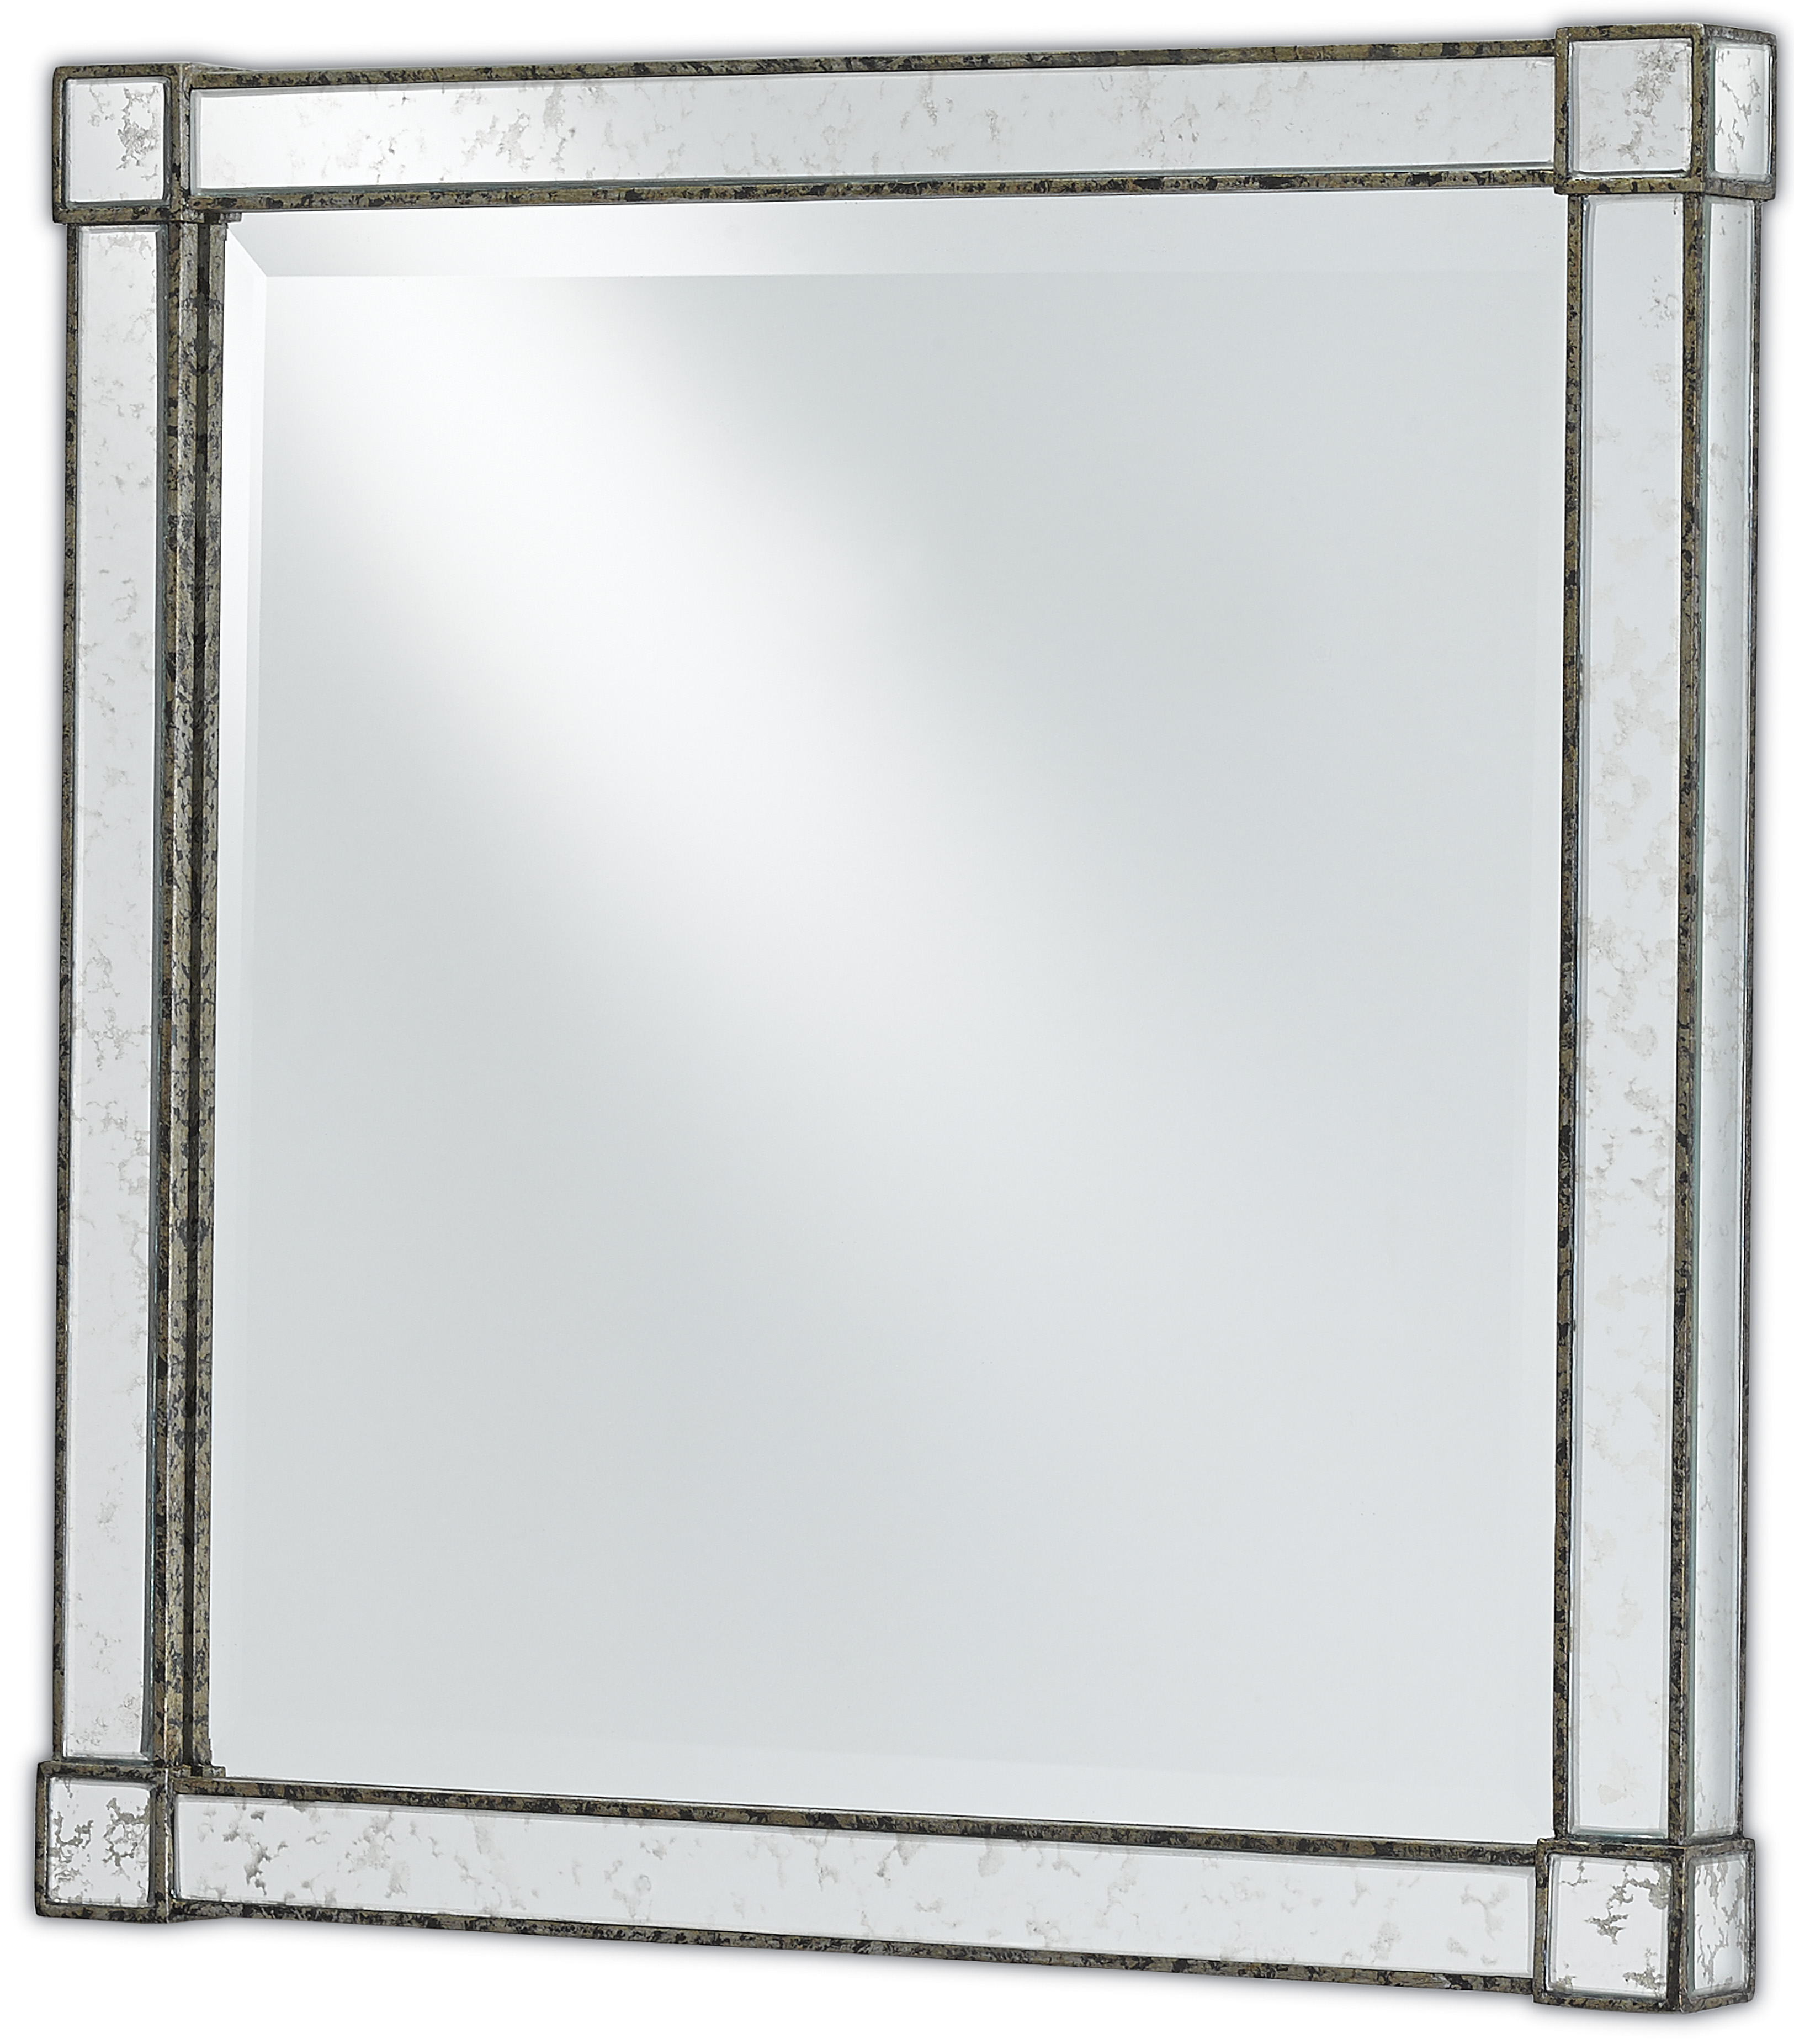 Monarch mirror with antique mirror sides from Currey & Co.